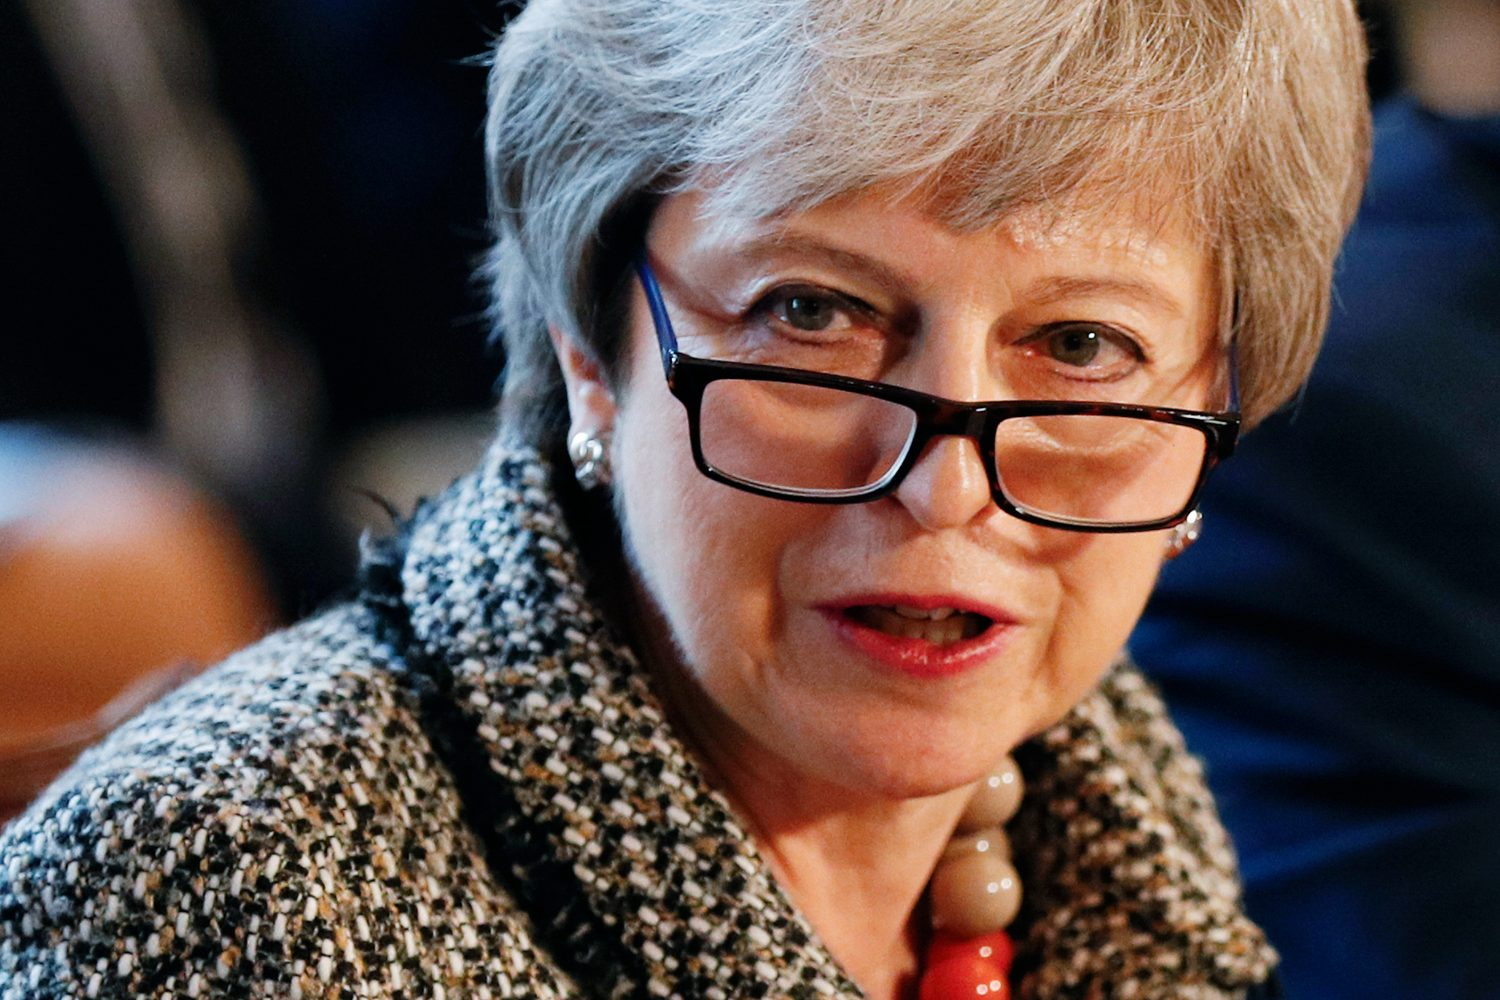 Britain's Prime Minister Theresa May attends a Serious Youth Violence Summit in Downing Street, London, Britain April 1, 2019. Adrian Dennis/Pool via REUTERS